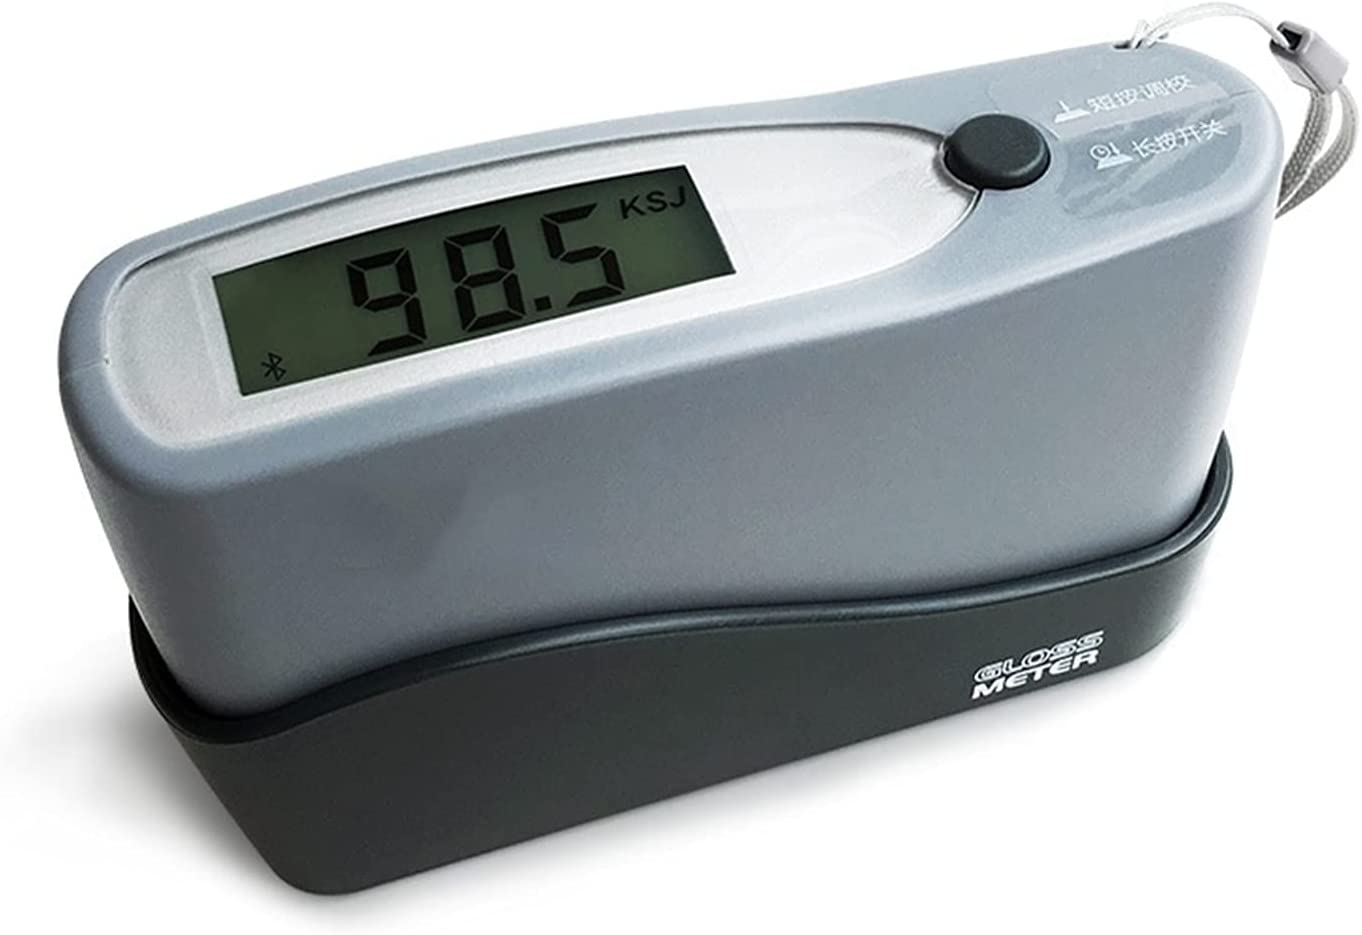 Charlotte Mall HAILAN-H Color Analyzer Digital Gloss for Max 79% OFF Degree Marble Meter 60